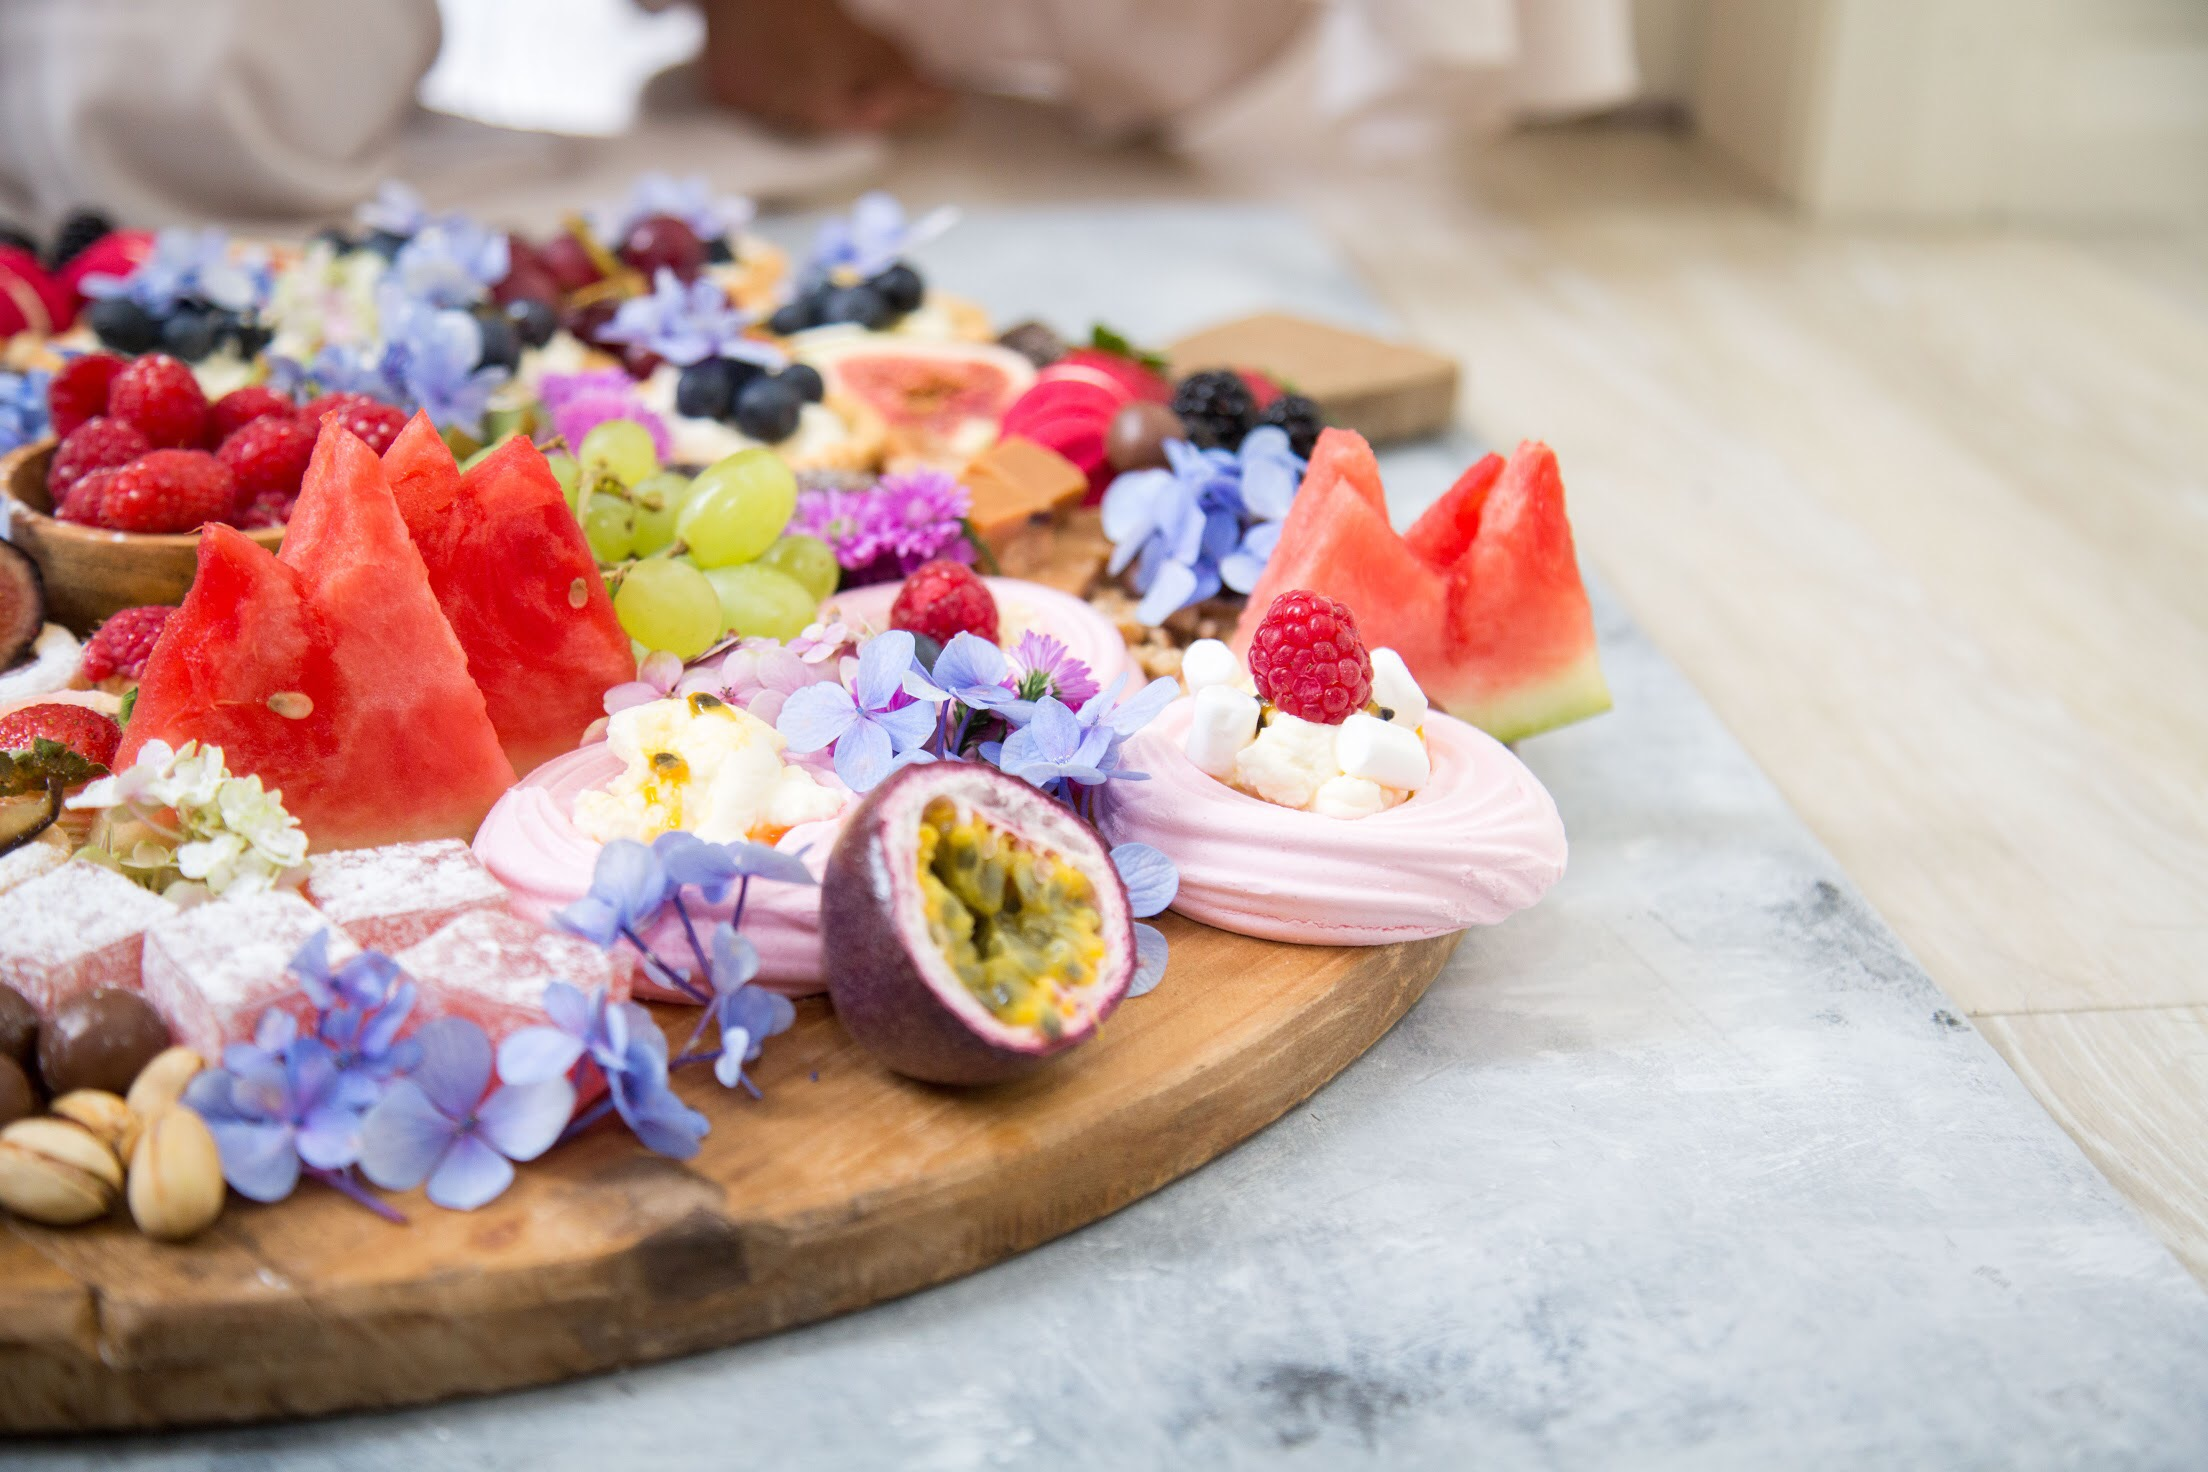 Fruit is natures candy so use it in abundance for your dessert boards.